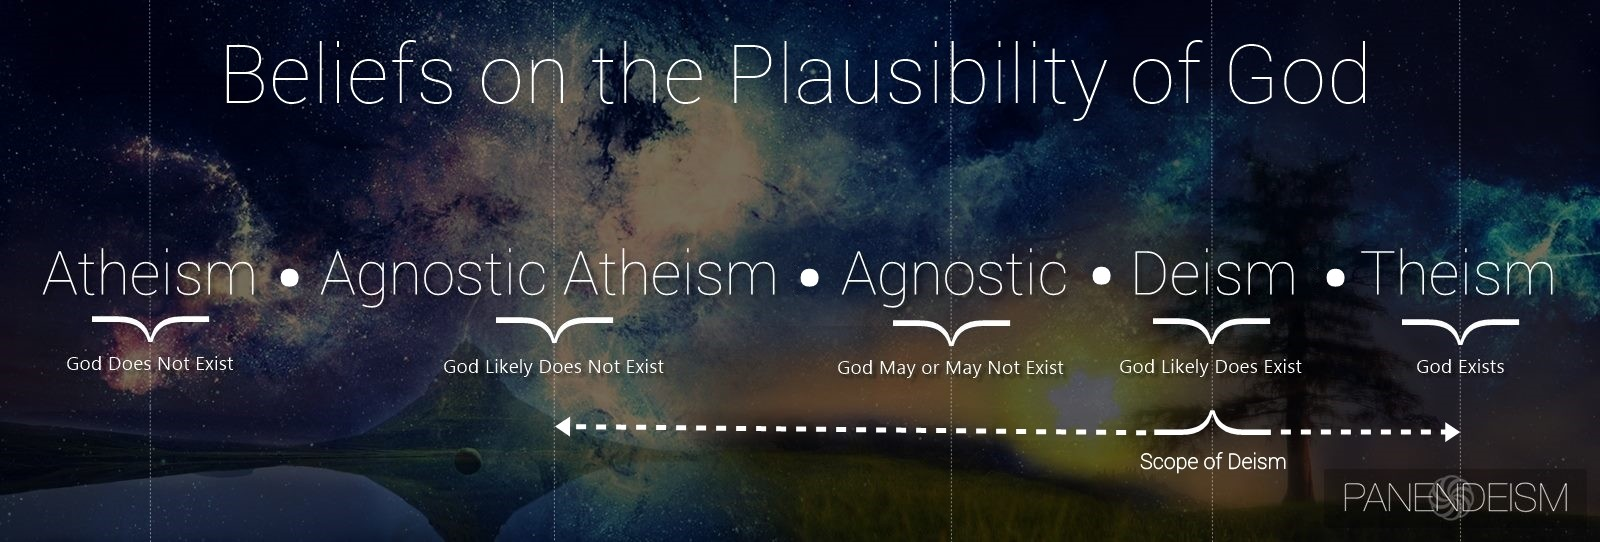 How Atheism and Deism are mutually exclusive